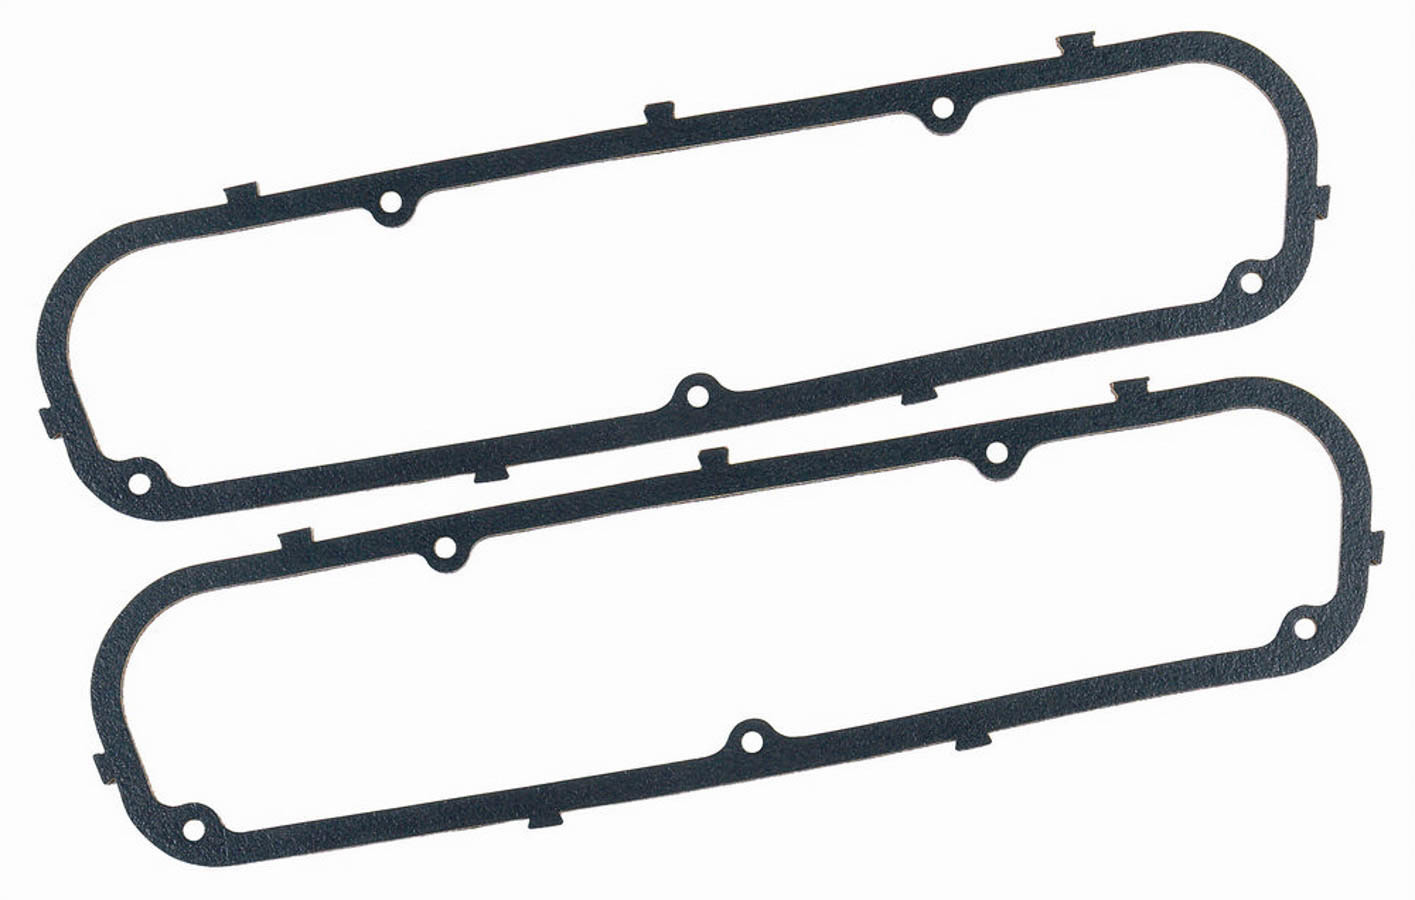 Mr Gasket 5876 Valve Cover Gasket, Ultra-Seal, 0.187 in Thick, Rubber Coated Cork / Rubber, Small Block Mopar, Pair